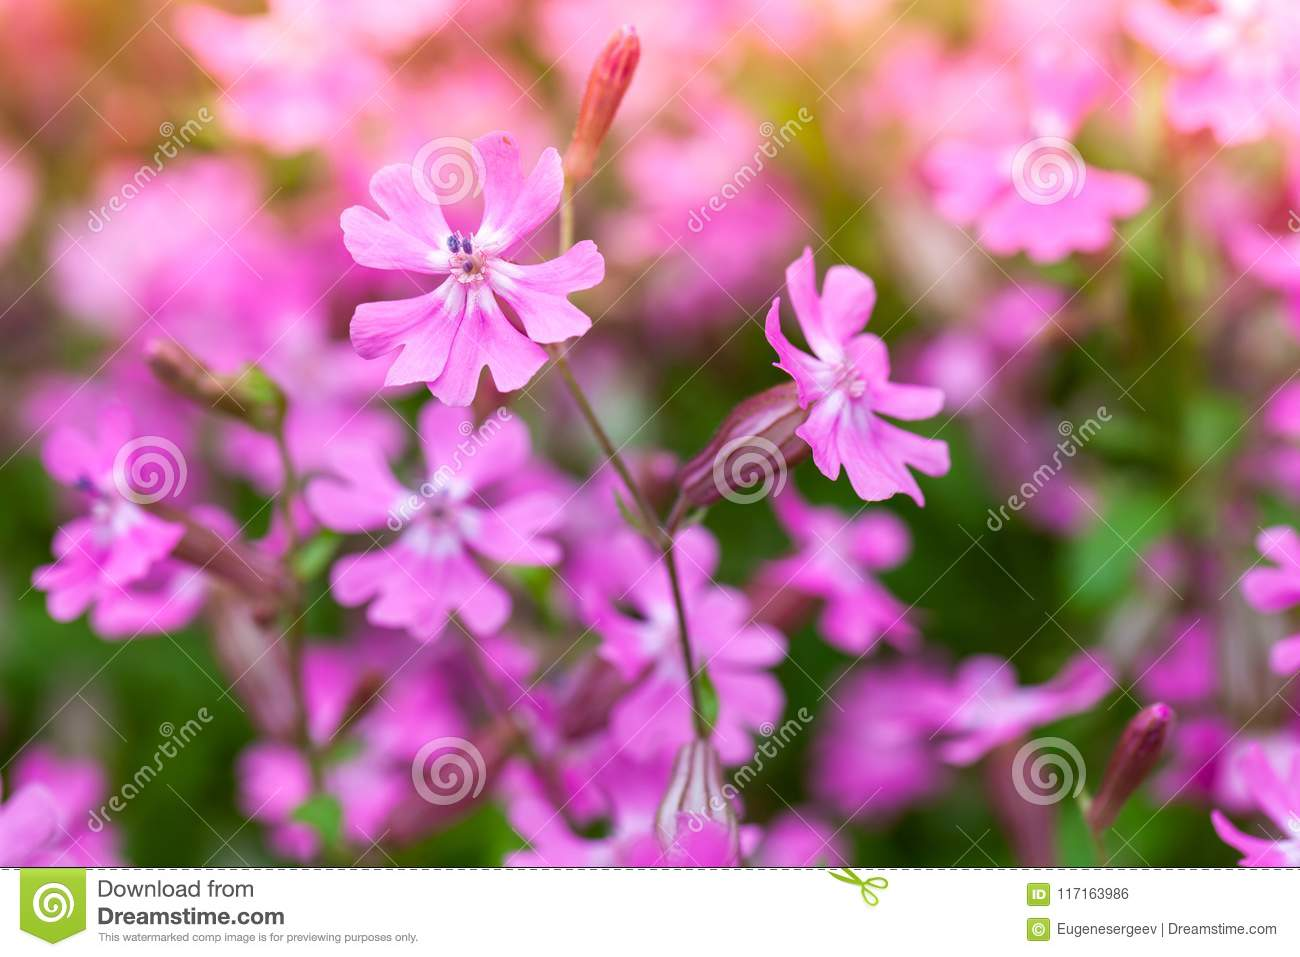 Bright Pink Flowers In Spring Garden Macro Stock Photo Image Of Use Selective Focus Photography For Dummies